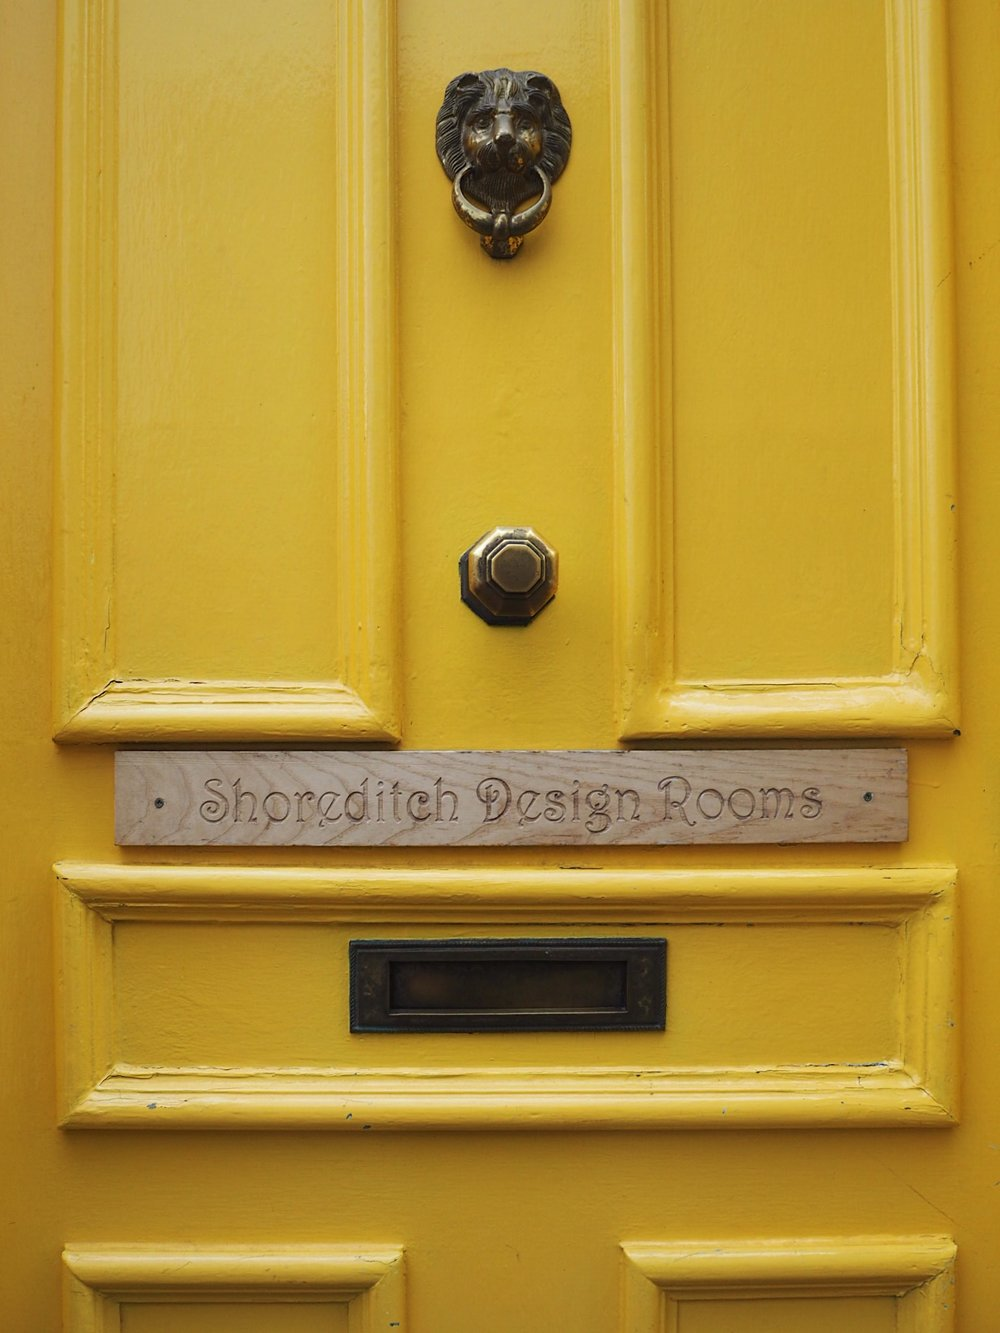 The carved wooden sign was the first give-away that behind this beautiful yellow door was a hub of creativity and craftsmanship.